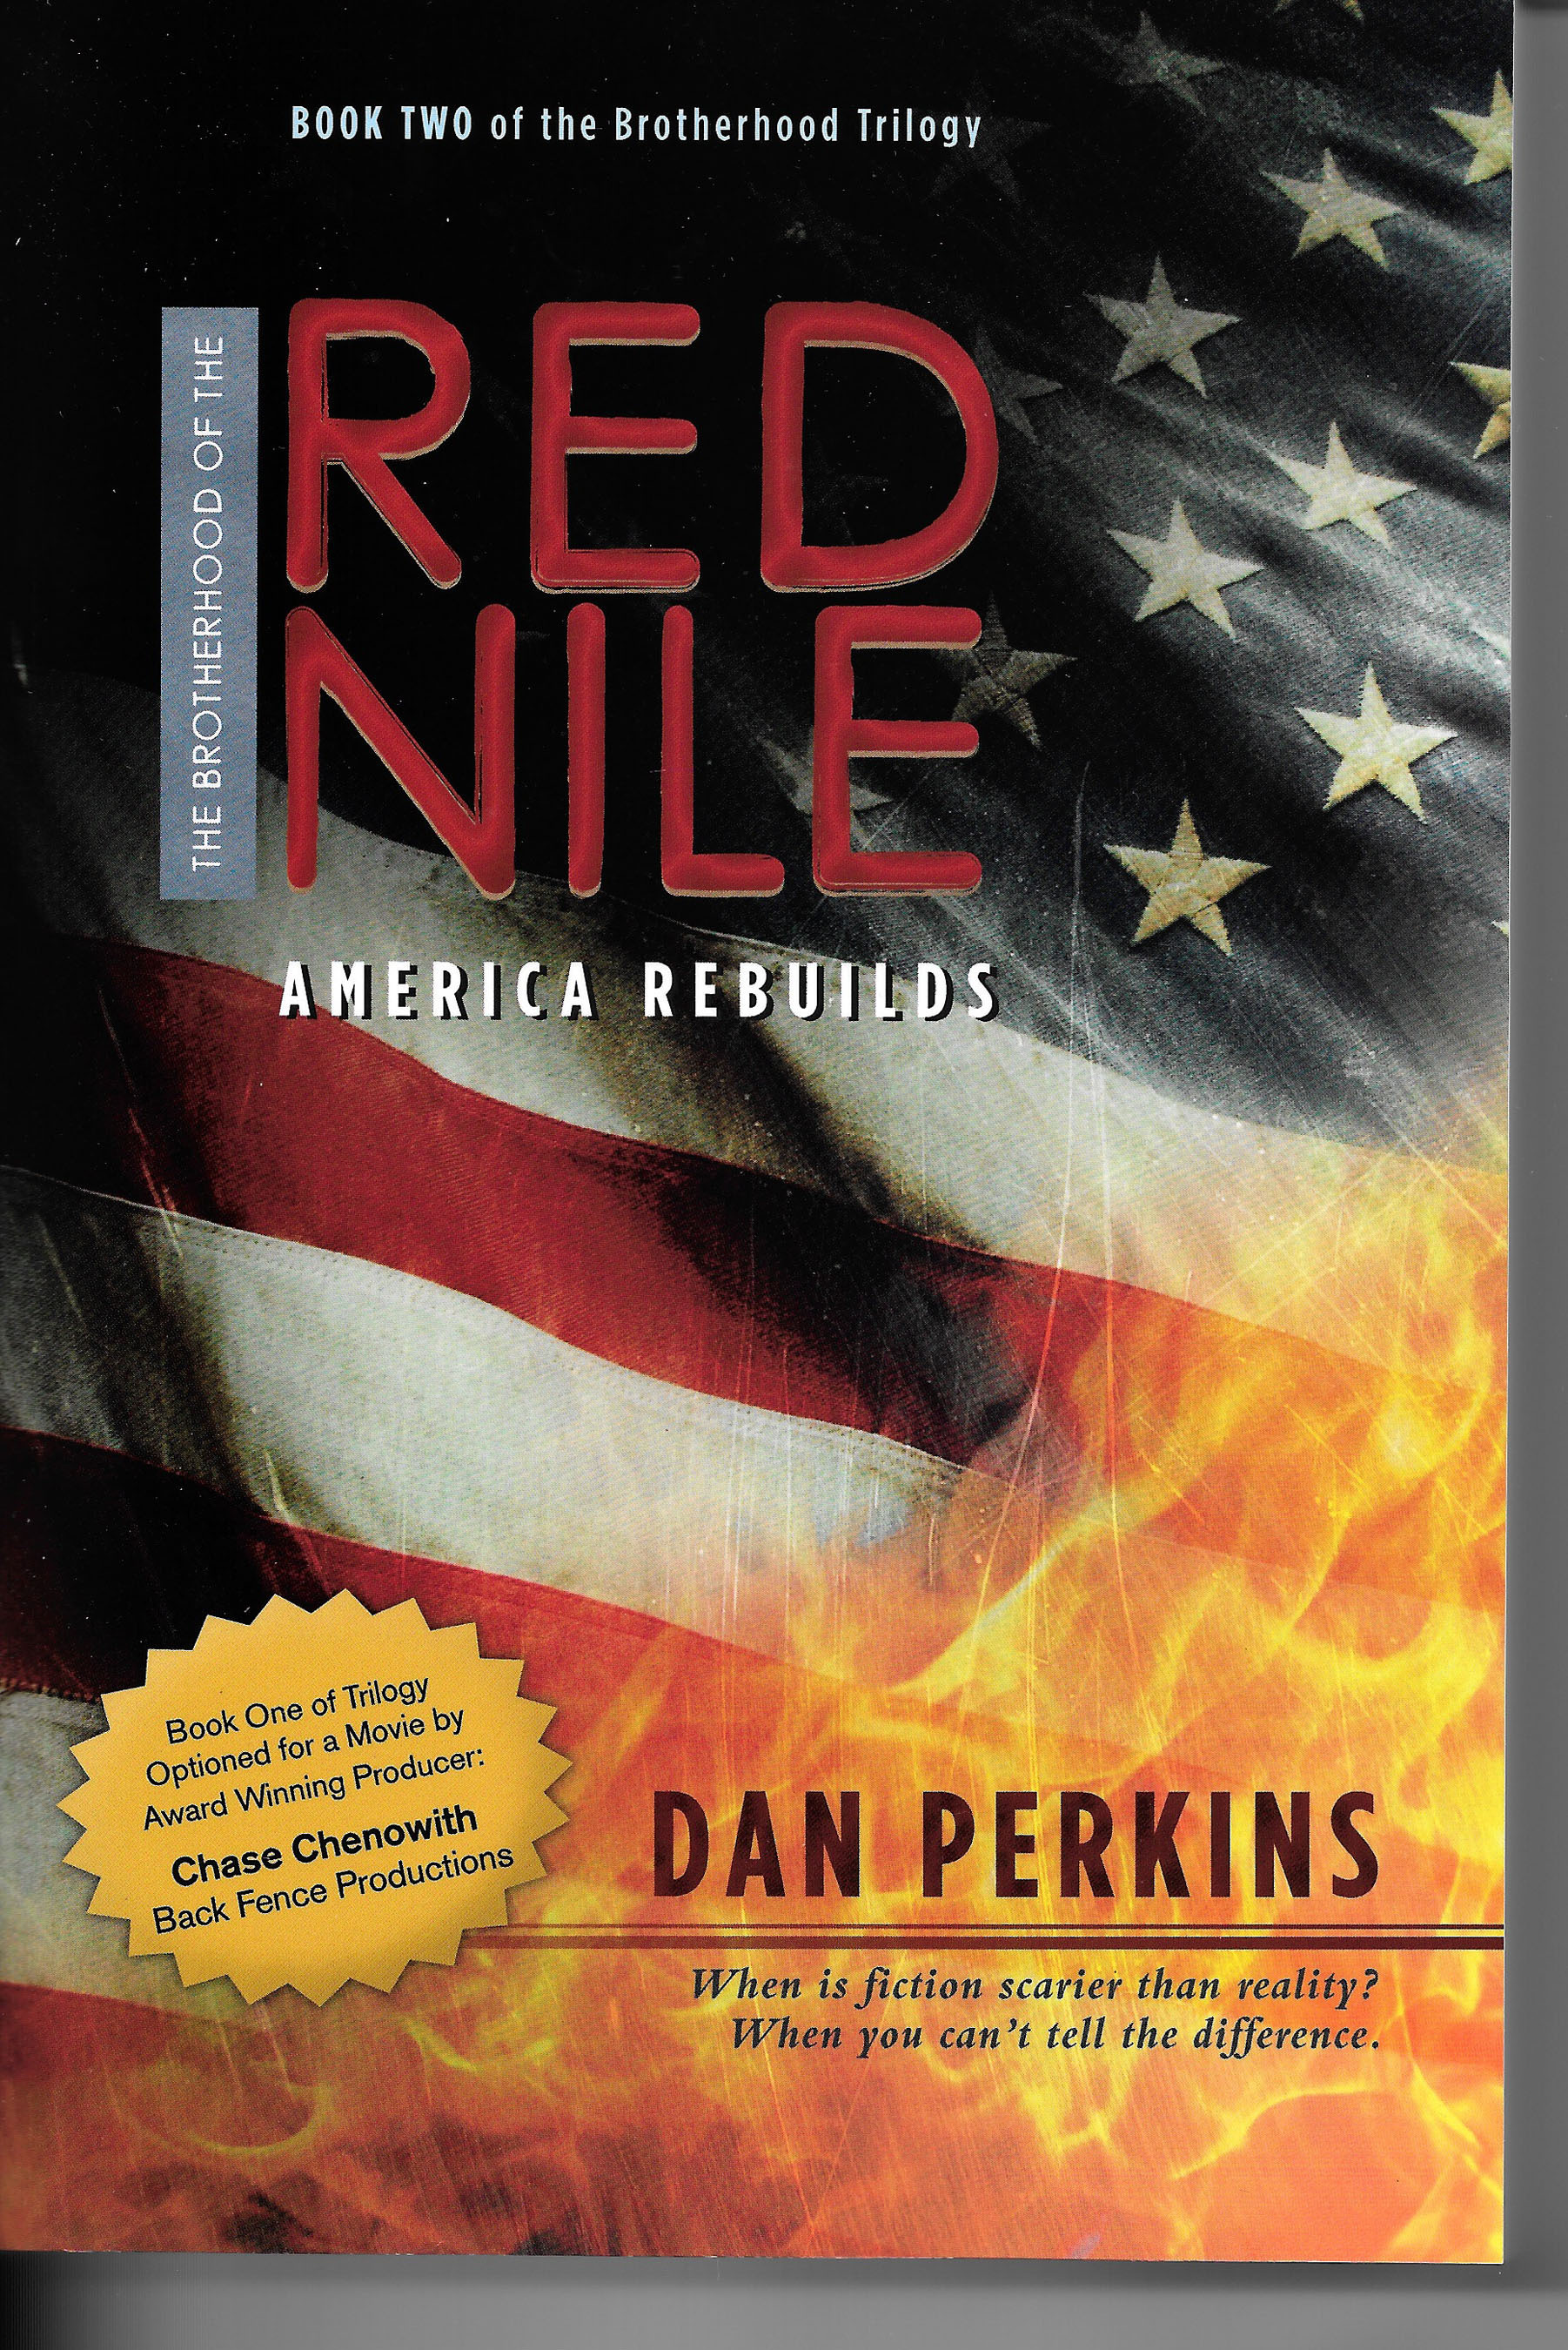 New Political Thriller, RED NILE, is Released